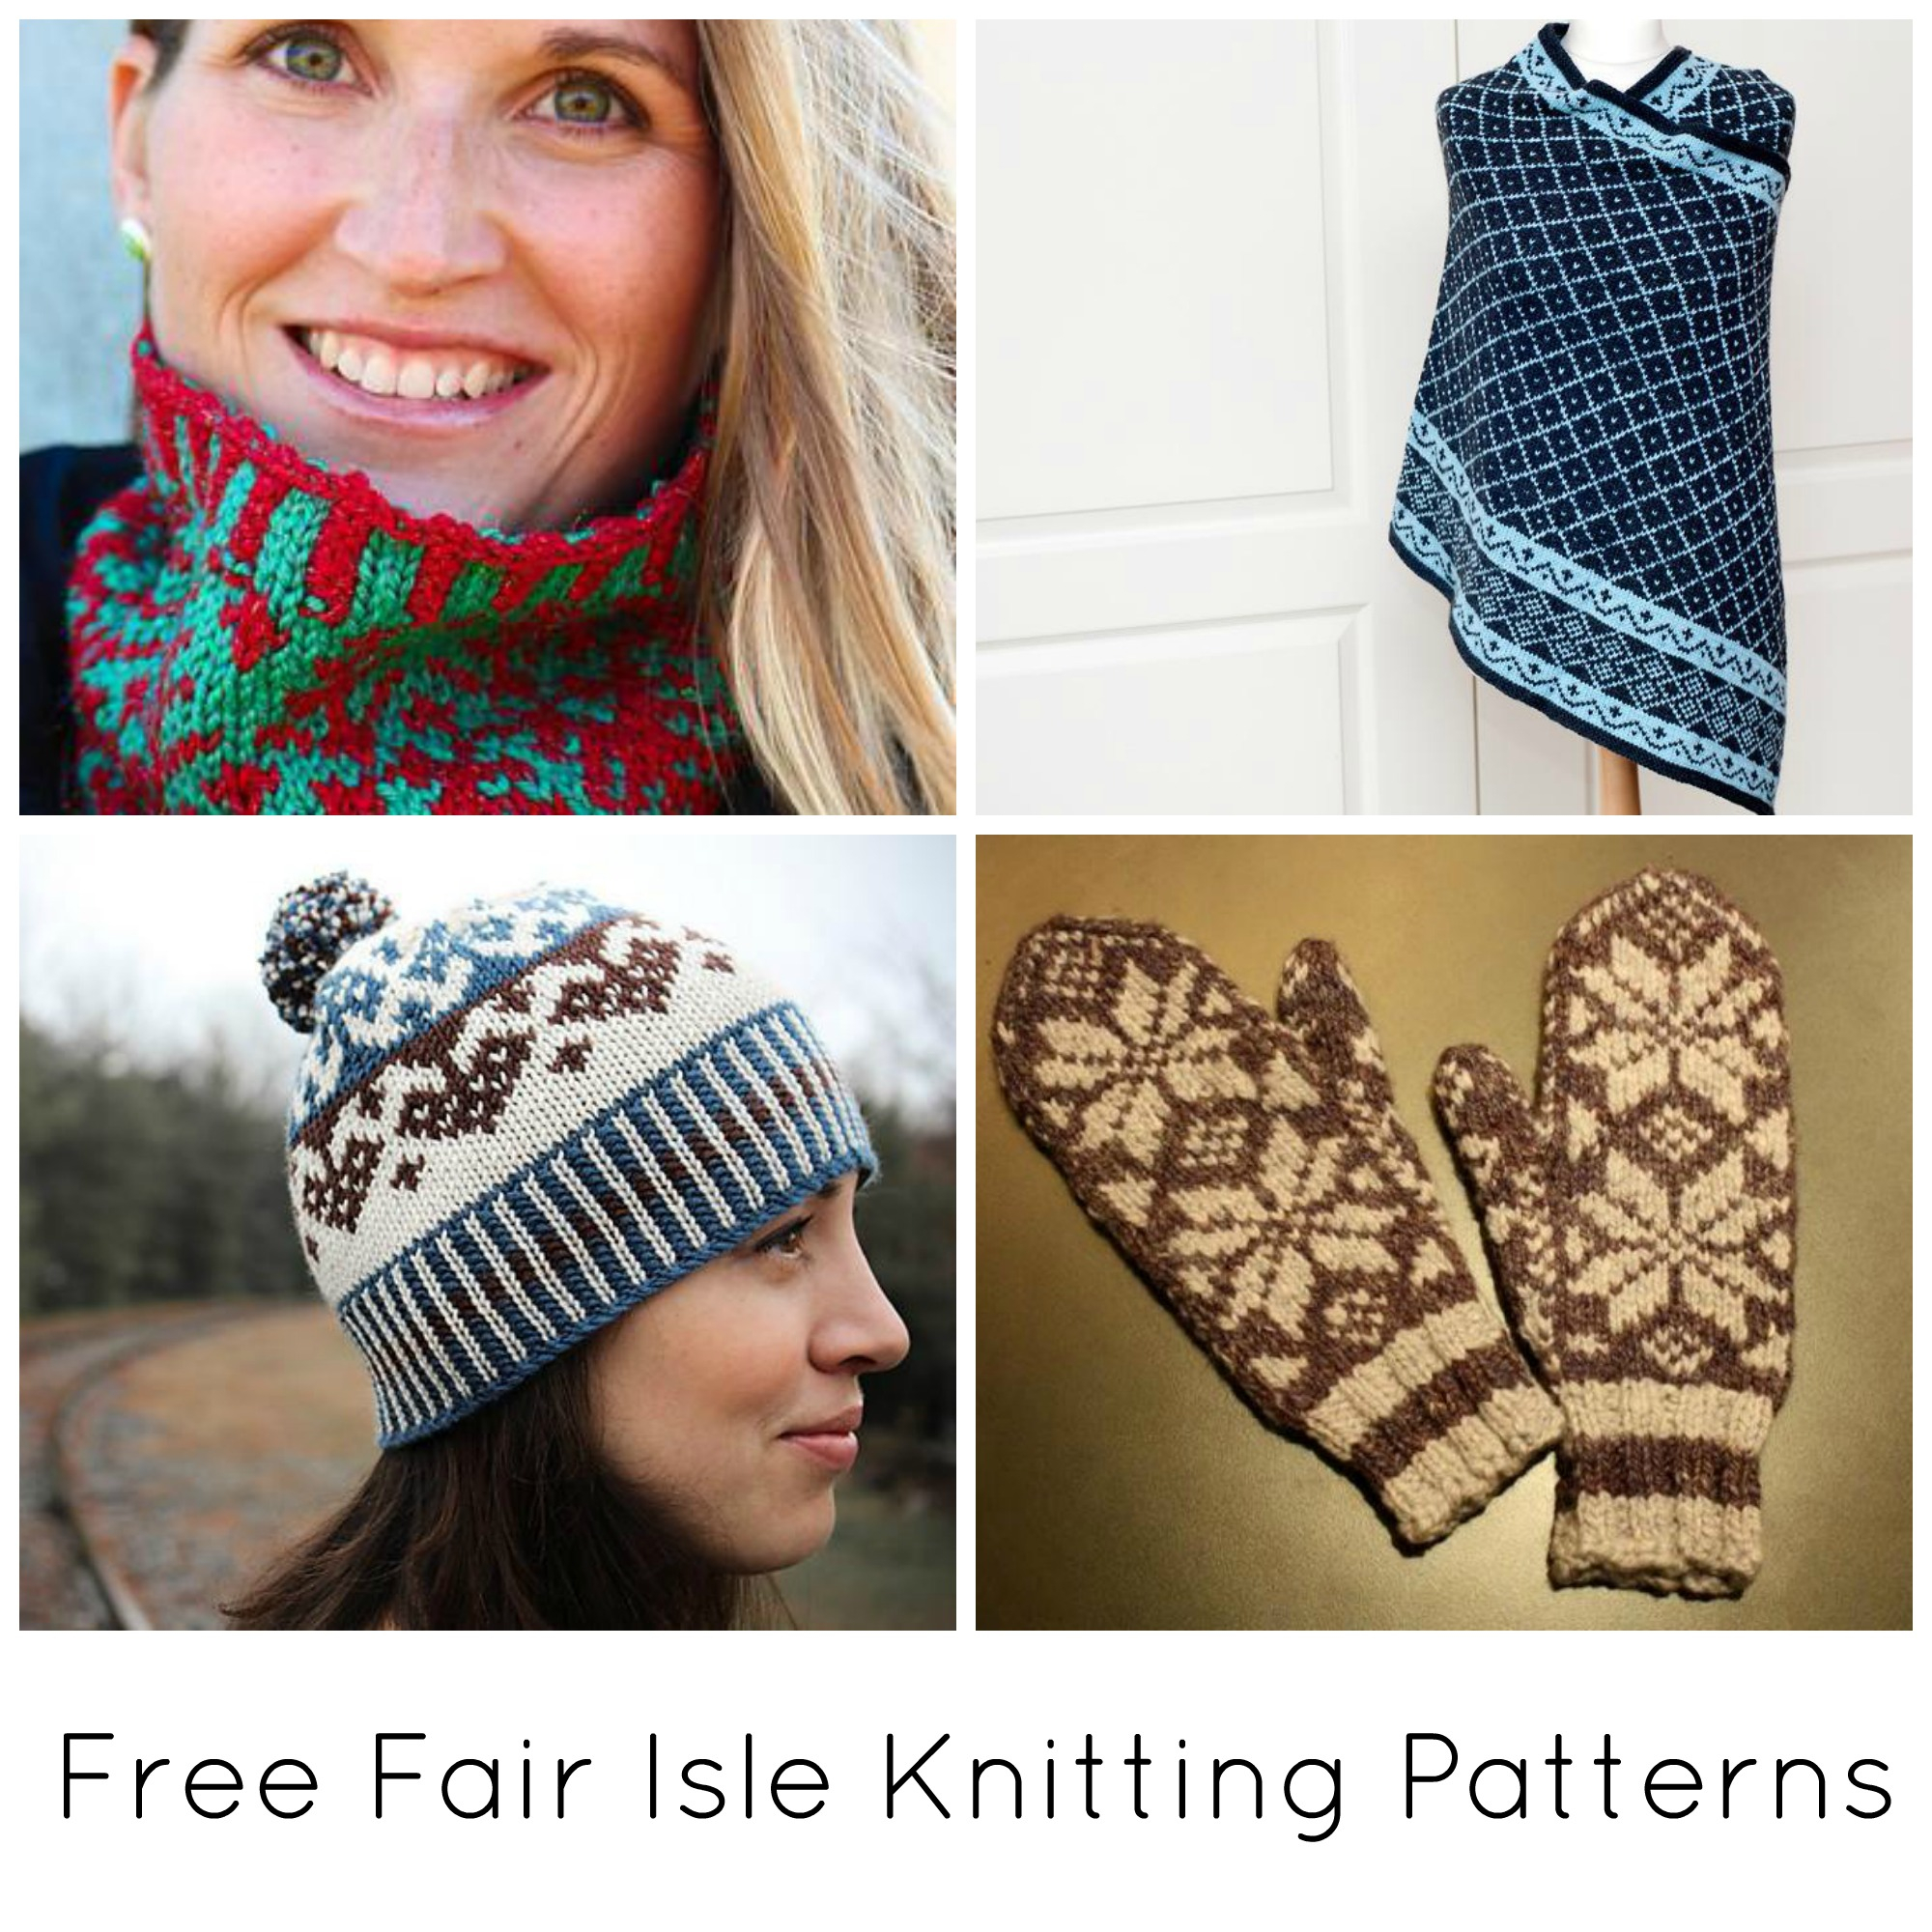 Colorwork Knitting Patterns Sweaters 10 Free Fair Isle Knitting Patterns On Craftsy